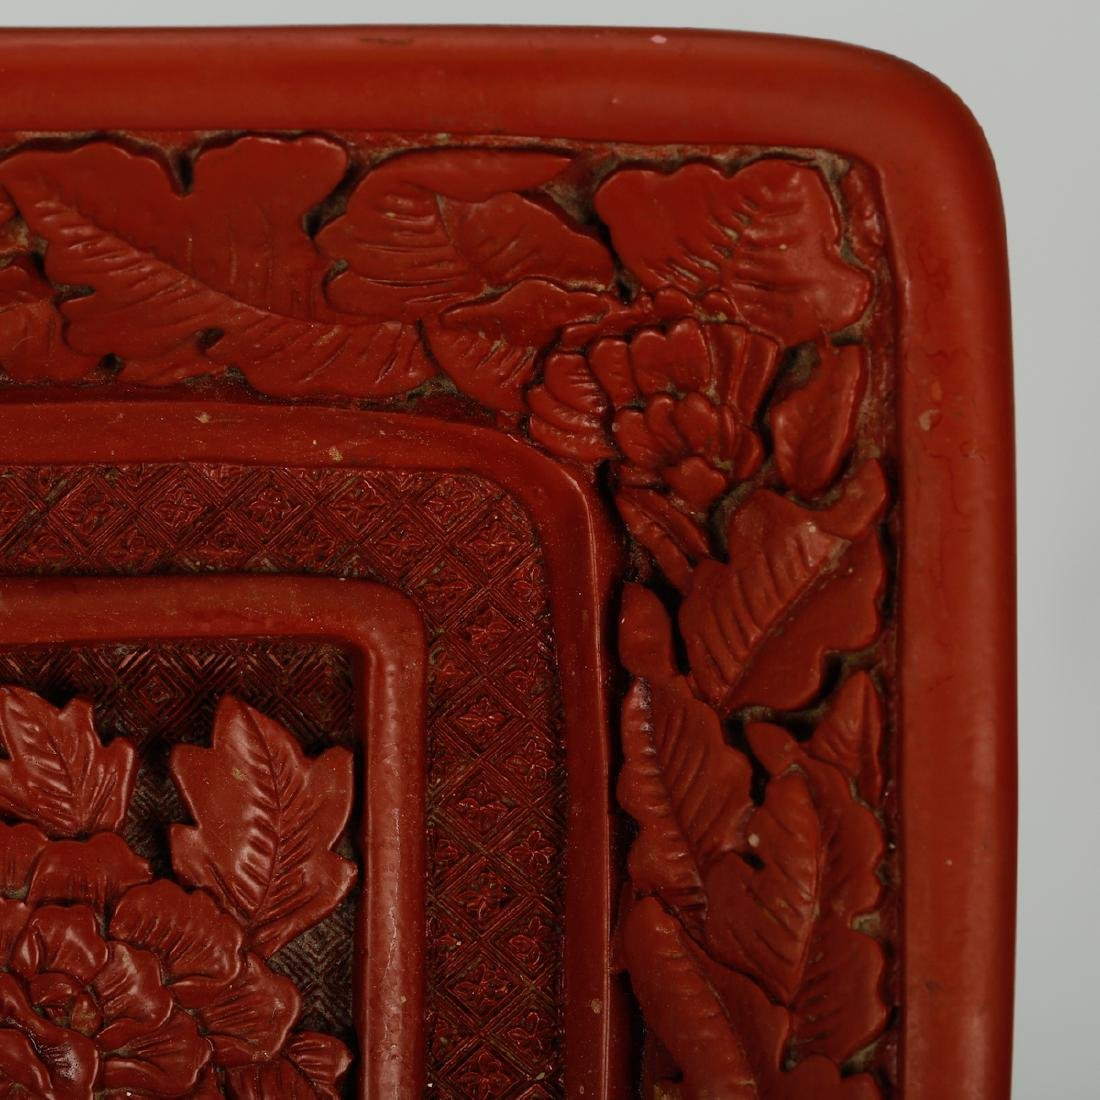 CHINESE CINNABAR LACQUER DISPLAY TRAY - 3